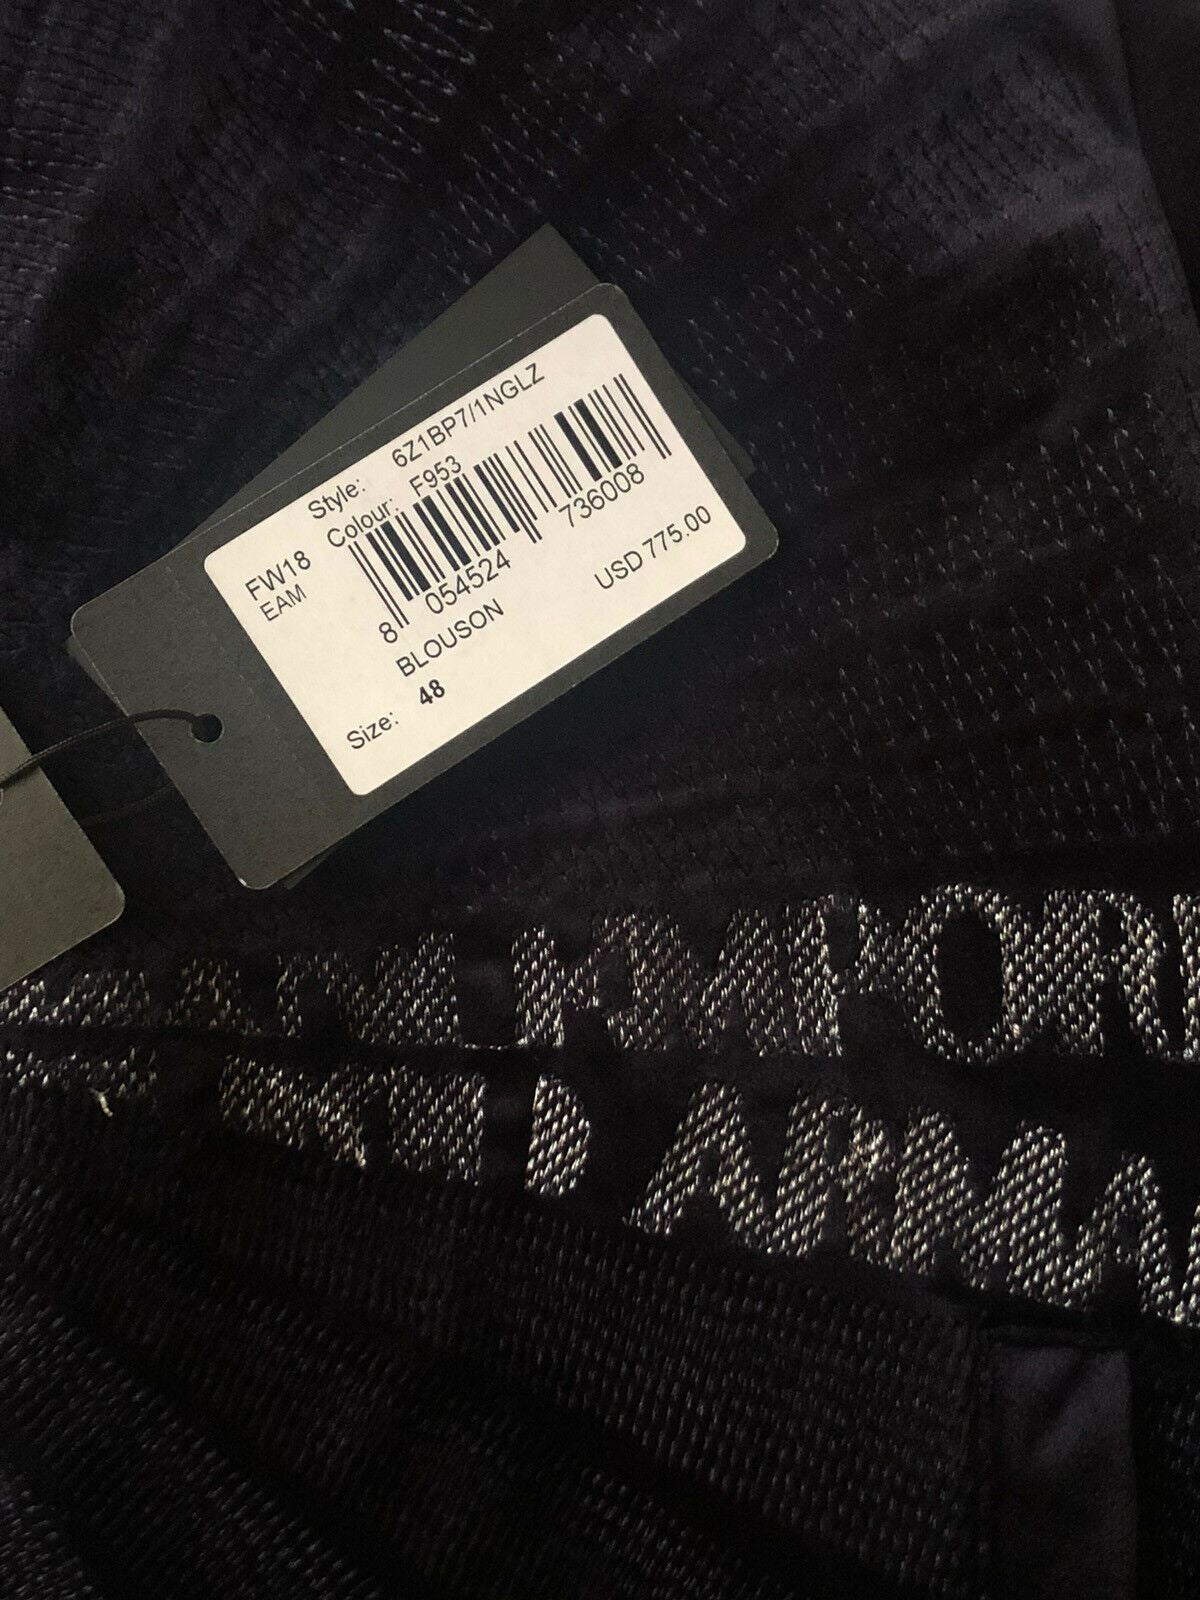 NWT $775 Emporio Armani Blouson 2 Sided Blue Jacket 38 US ( 48 Eur ) 6Z1BP7